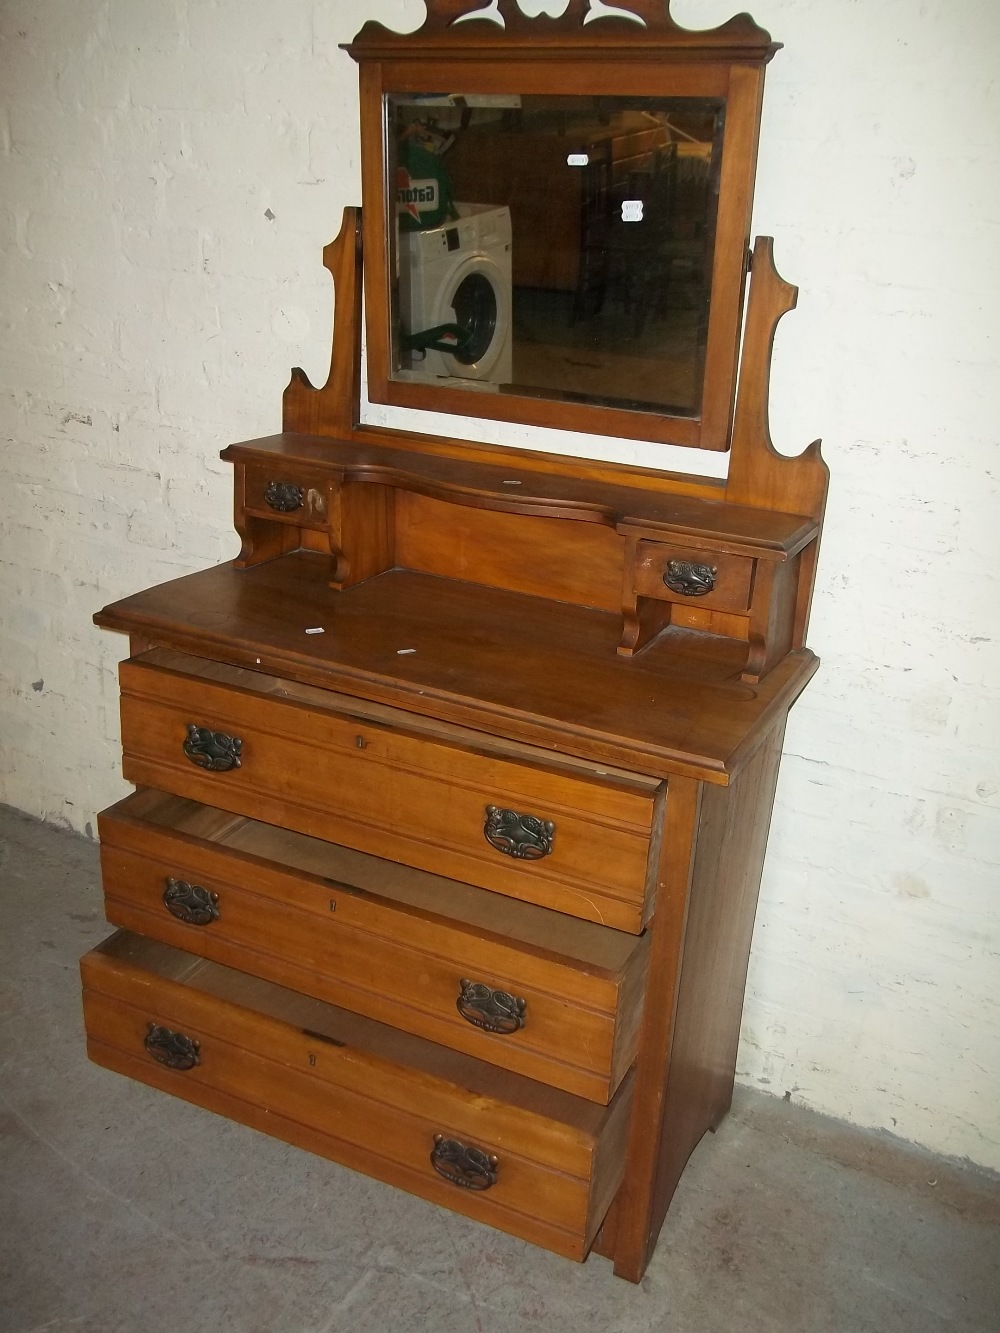 AN EDWARDIAN DRESSING TABLE - Image 2 of 2